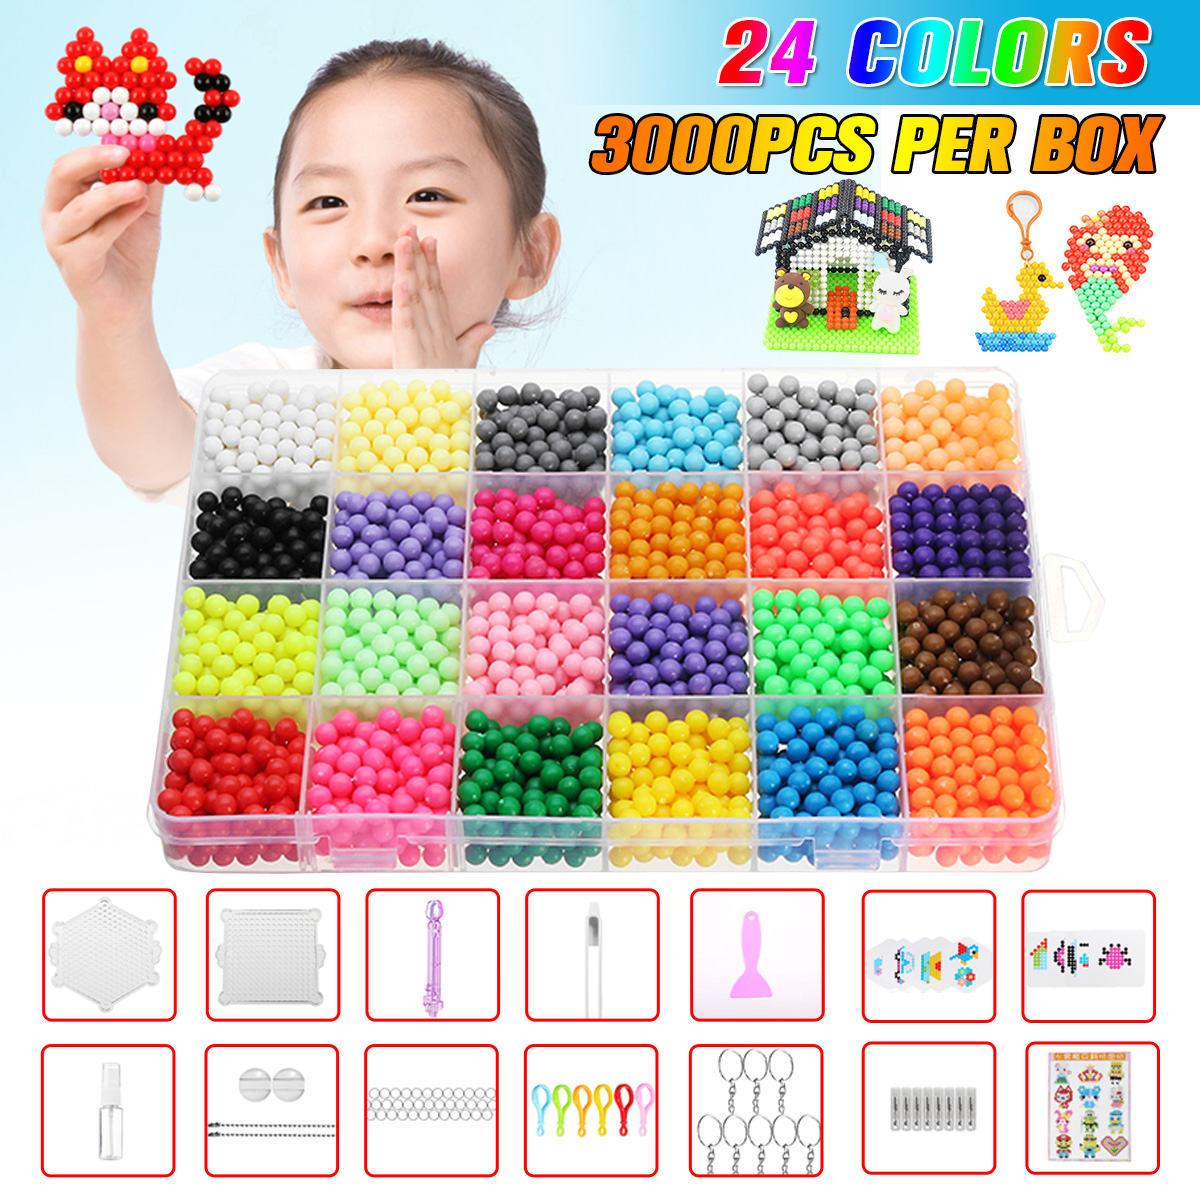 Mimi Play 24 Colors 3000pcs Water Spray Magic Beads DIY Kit Ball Puzzle Game Fun DIY handmaking 3D puzzle Educational Toys